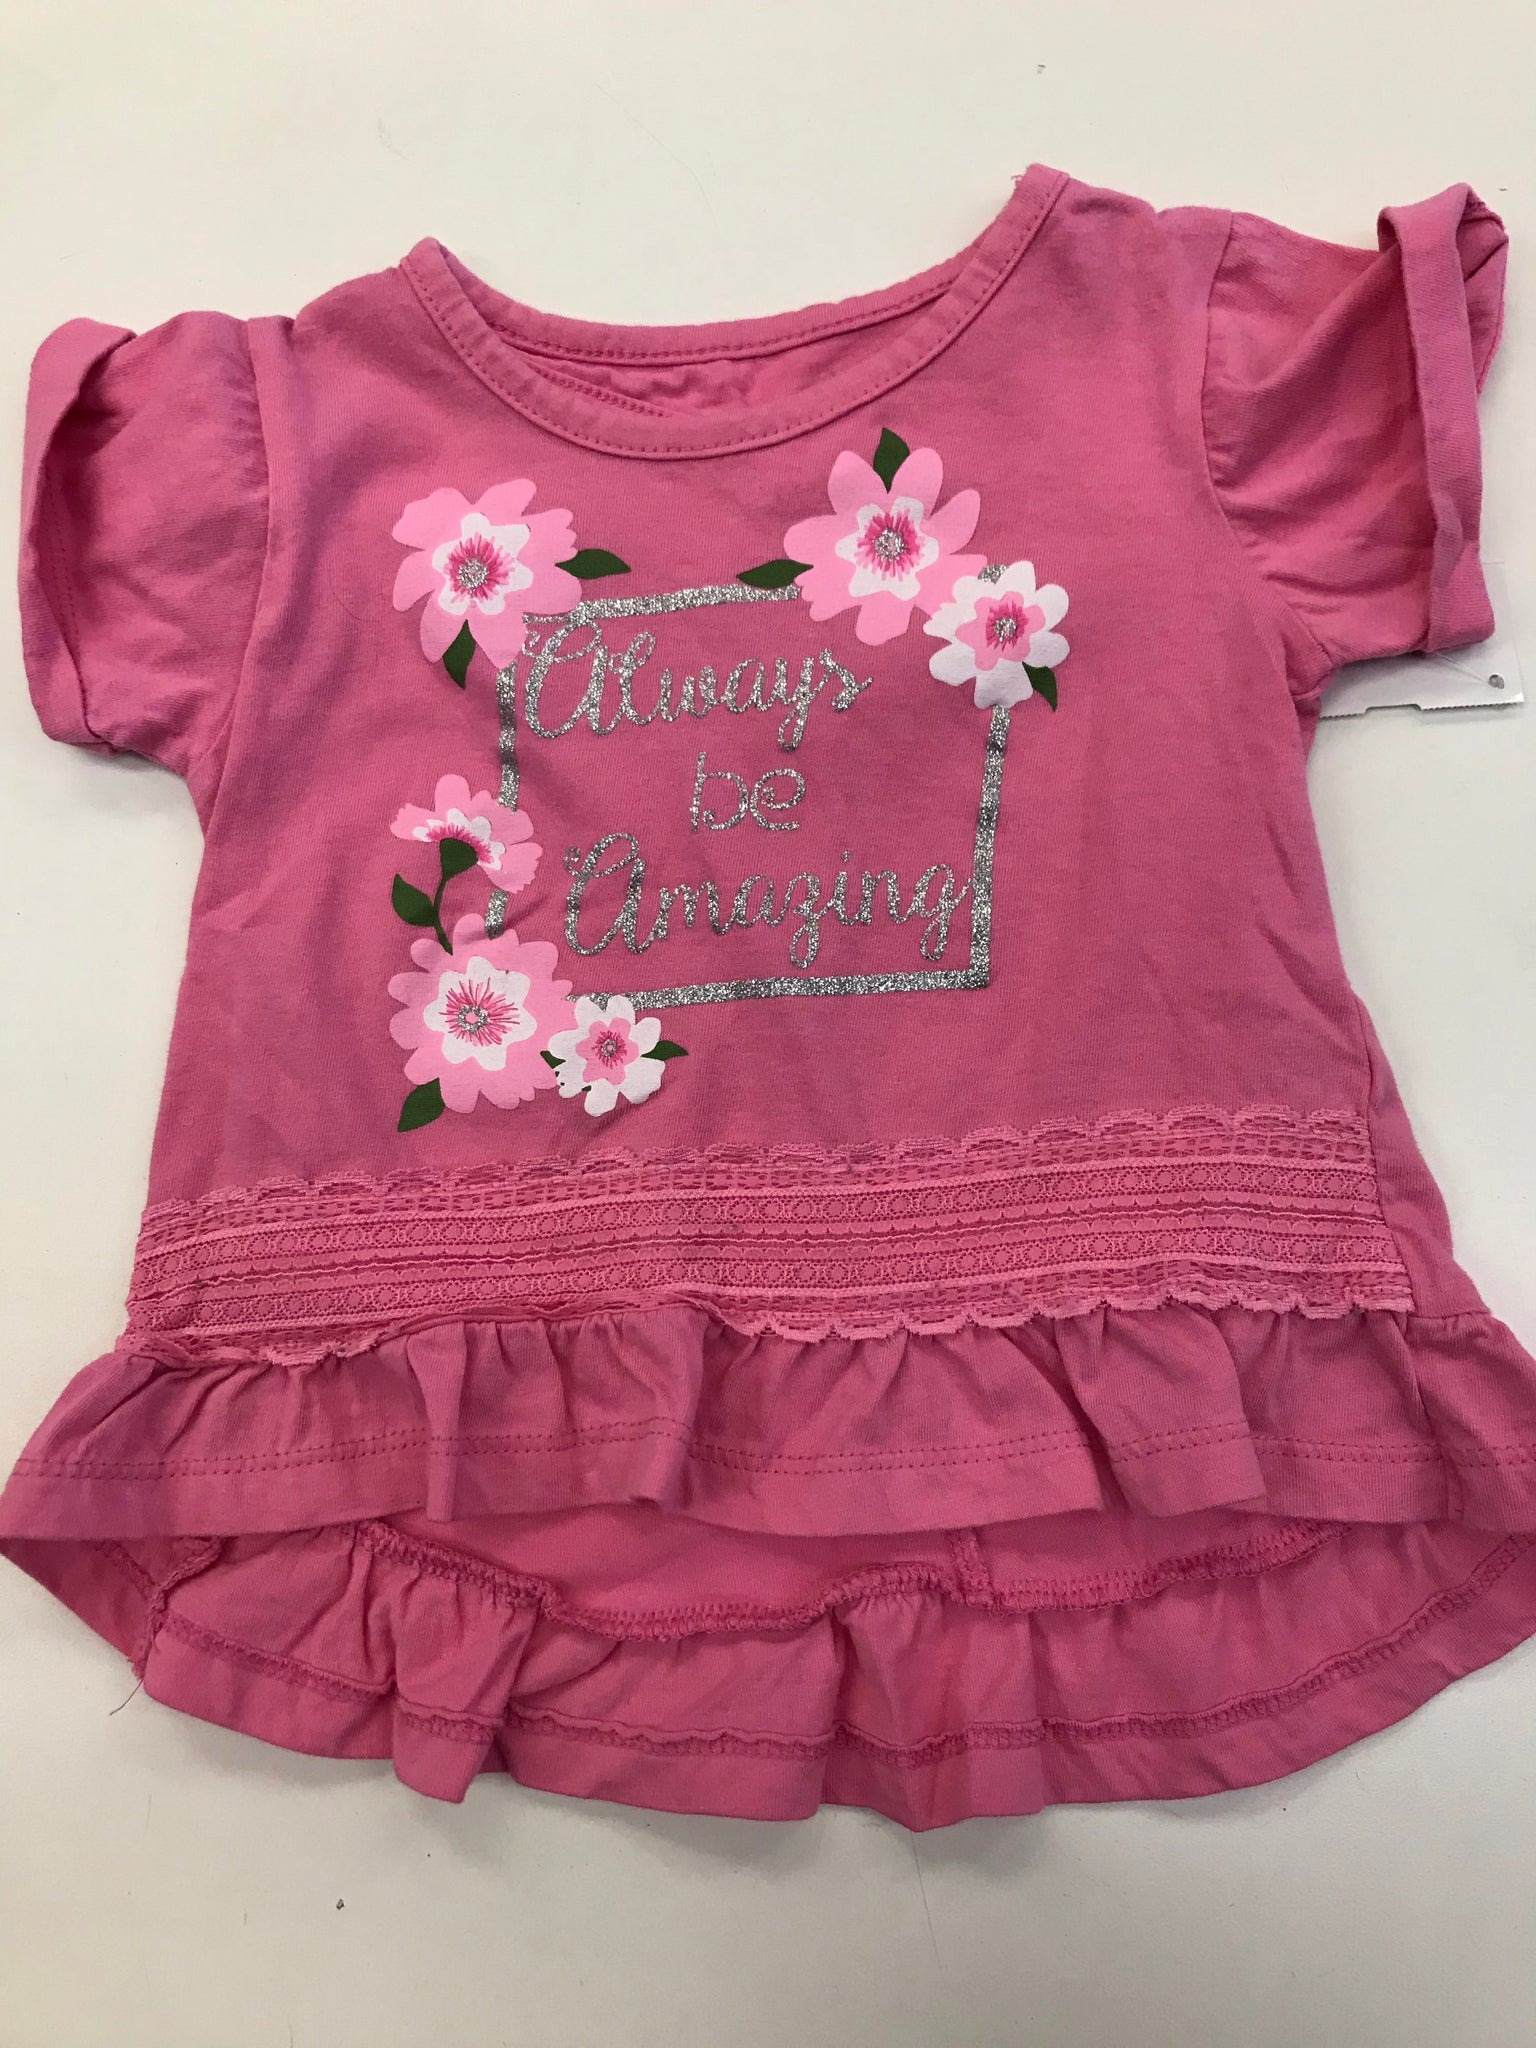 Girls Shirt 2T